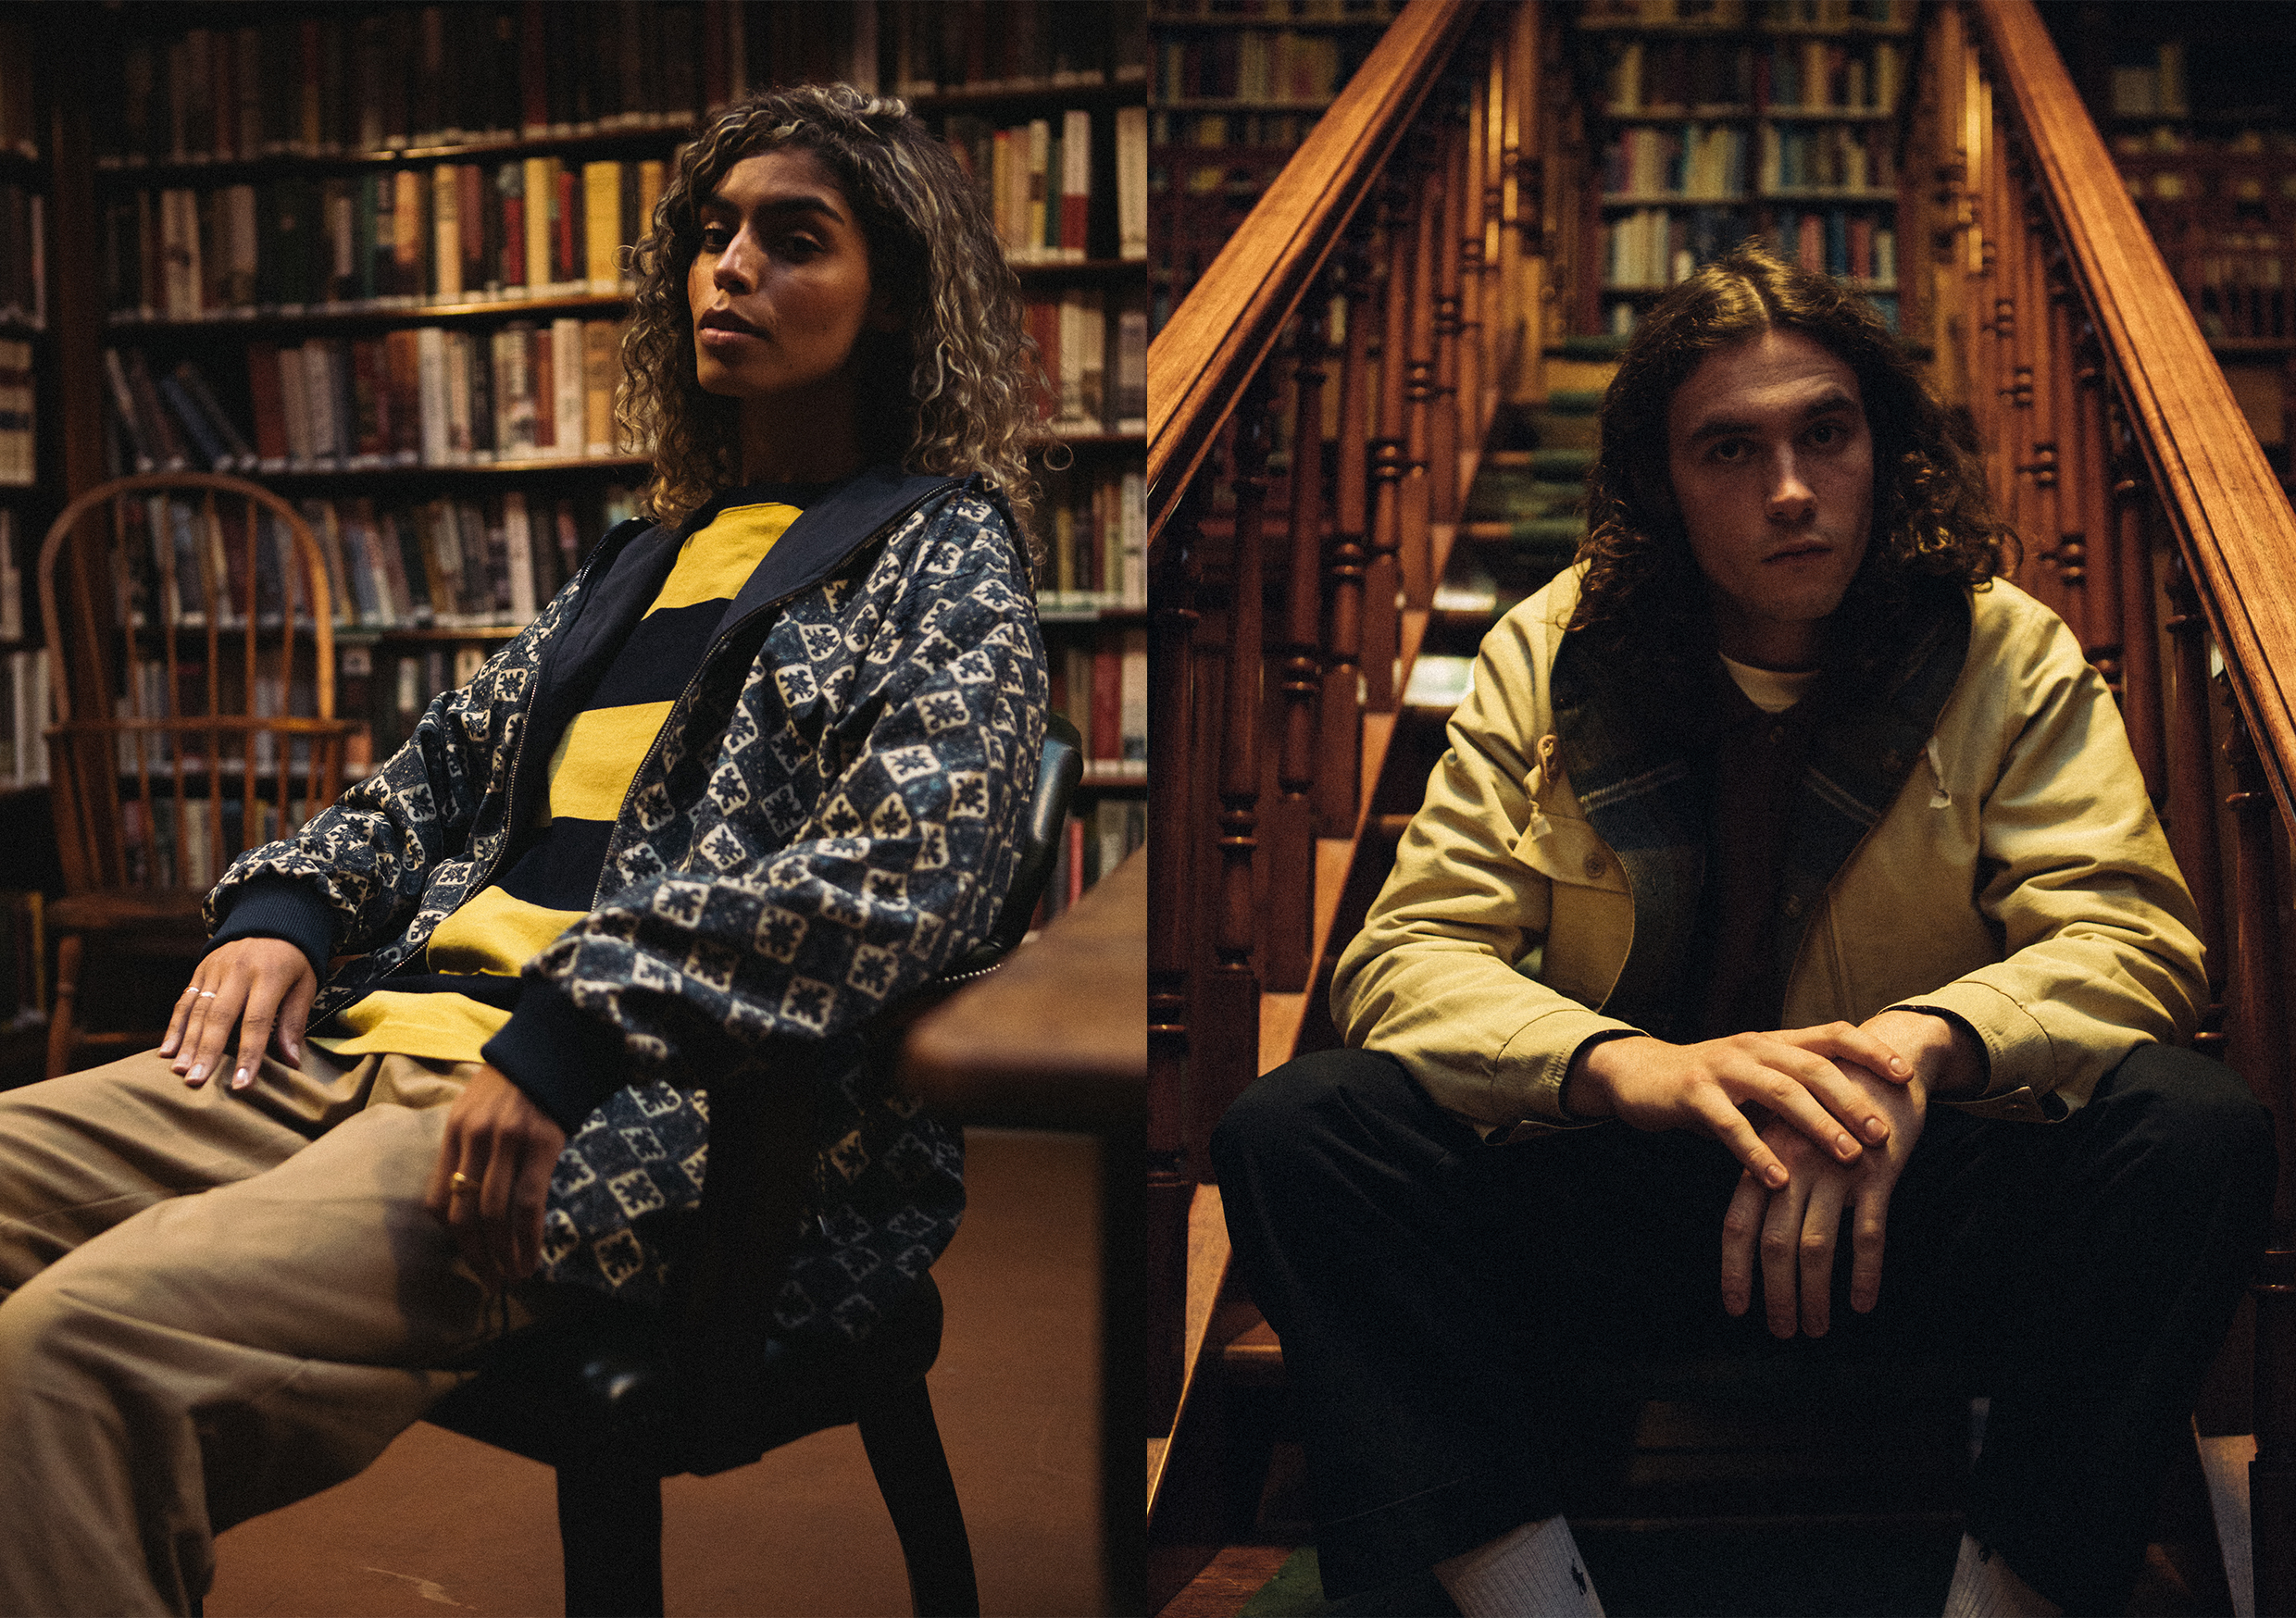 beams plus AW20 zip blouson editorial at Leeds library